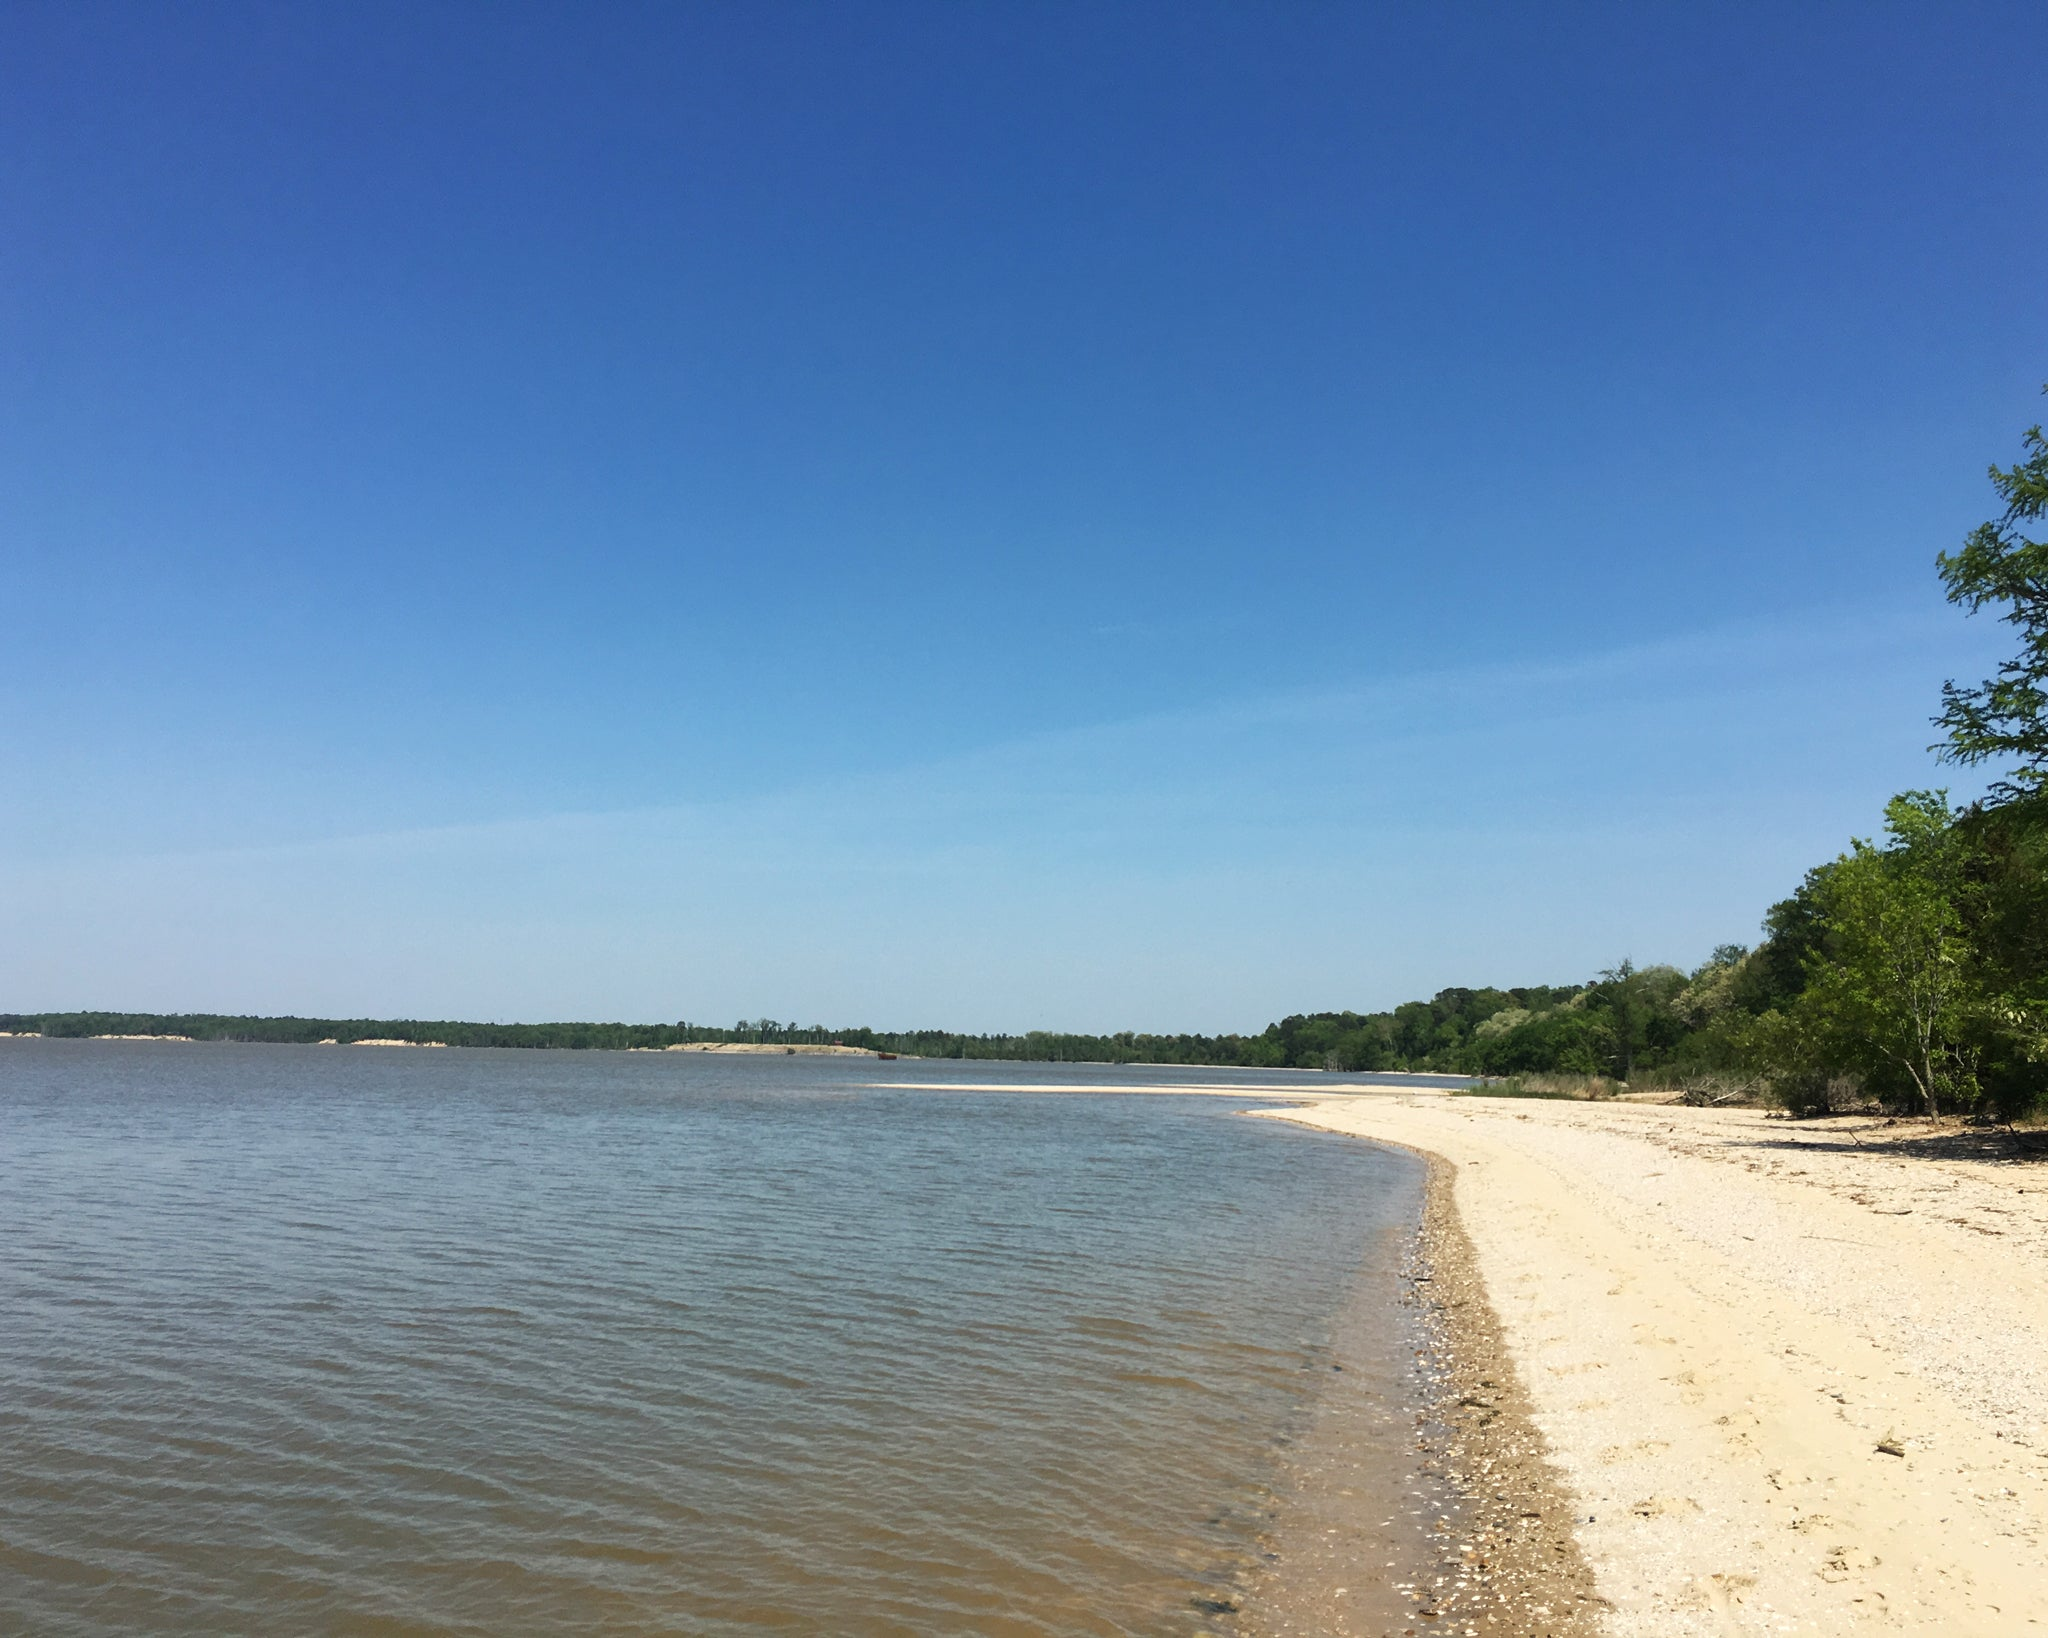 Chippokes State Park Beach